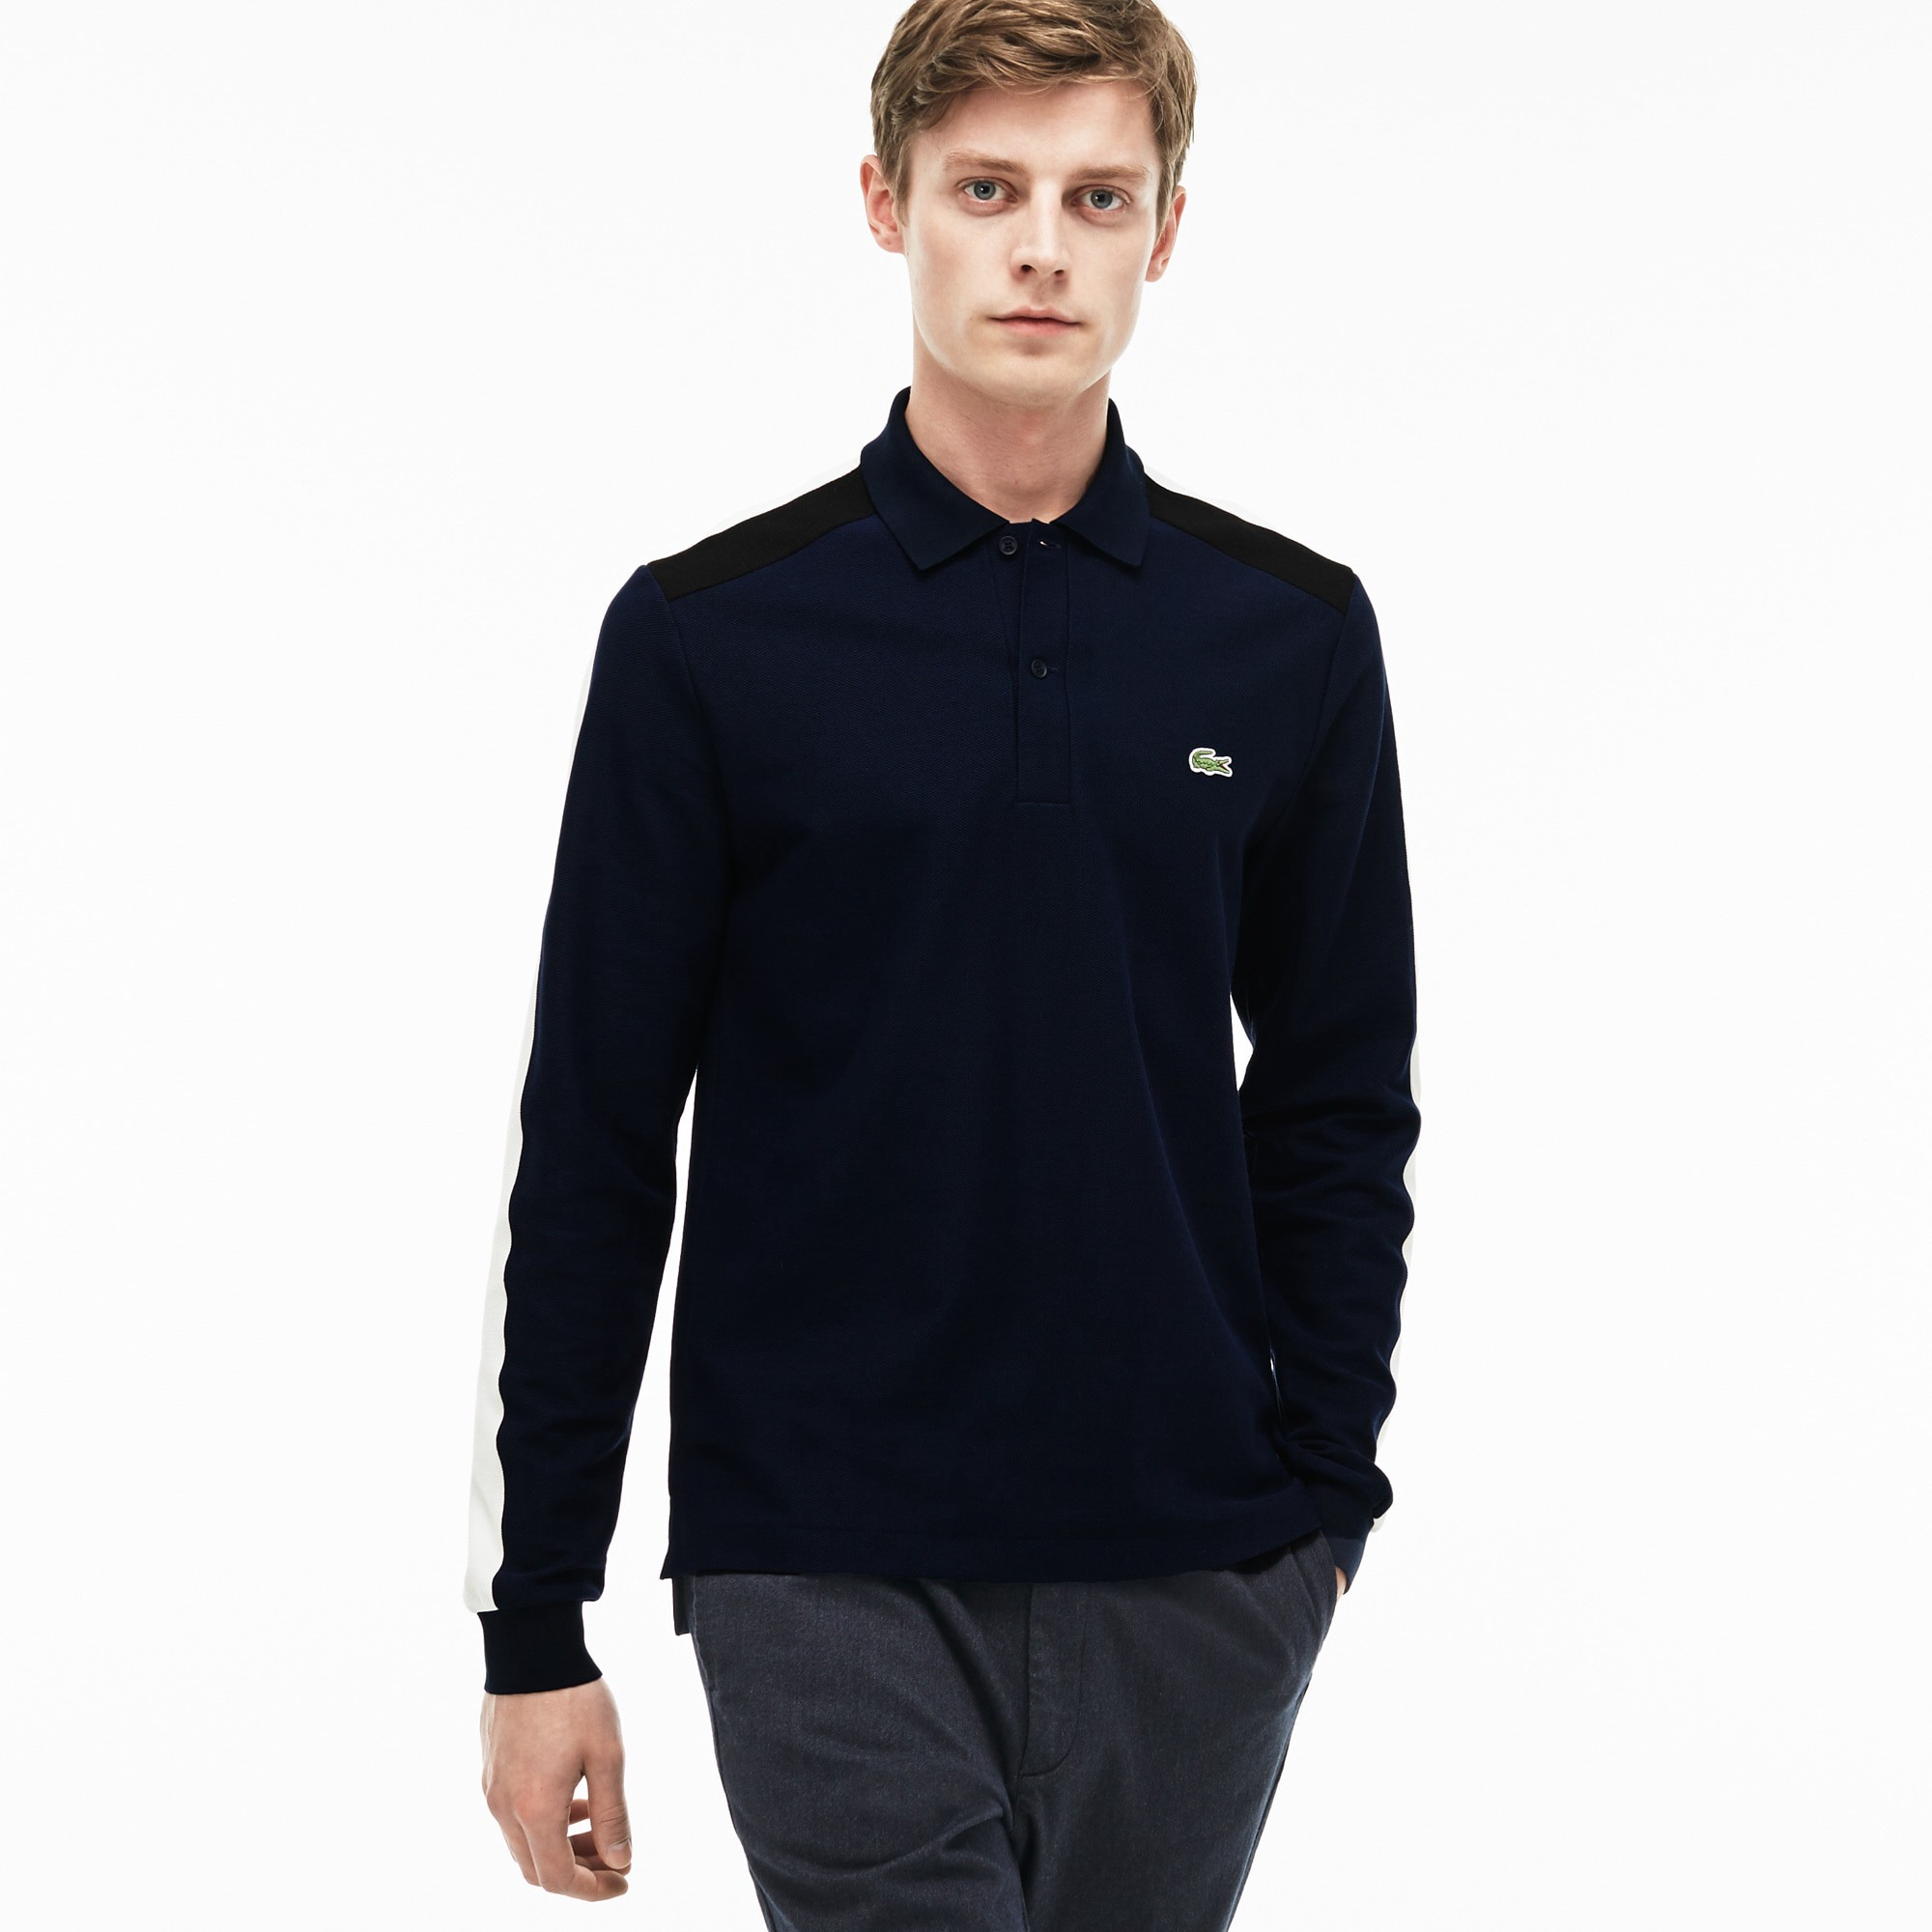 e966b6f81 LACOSTE Men's Made In France Regular Fit Piqué Polo - navy blue/cake flour  whit. #lacoste #cloth #